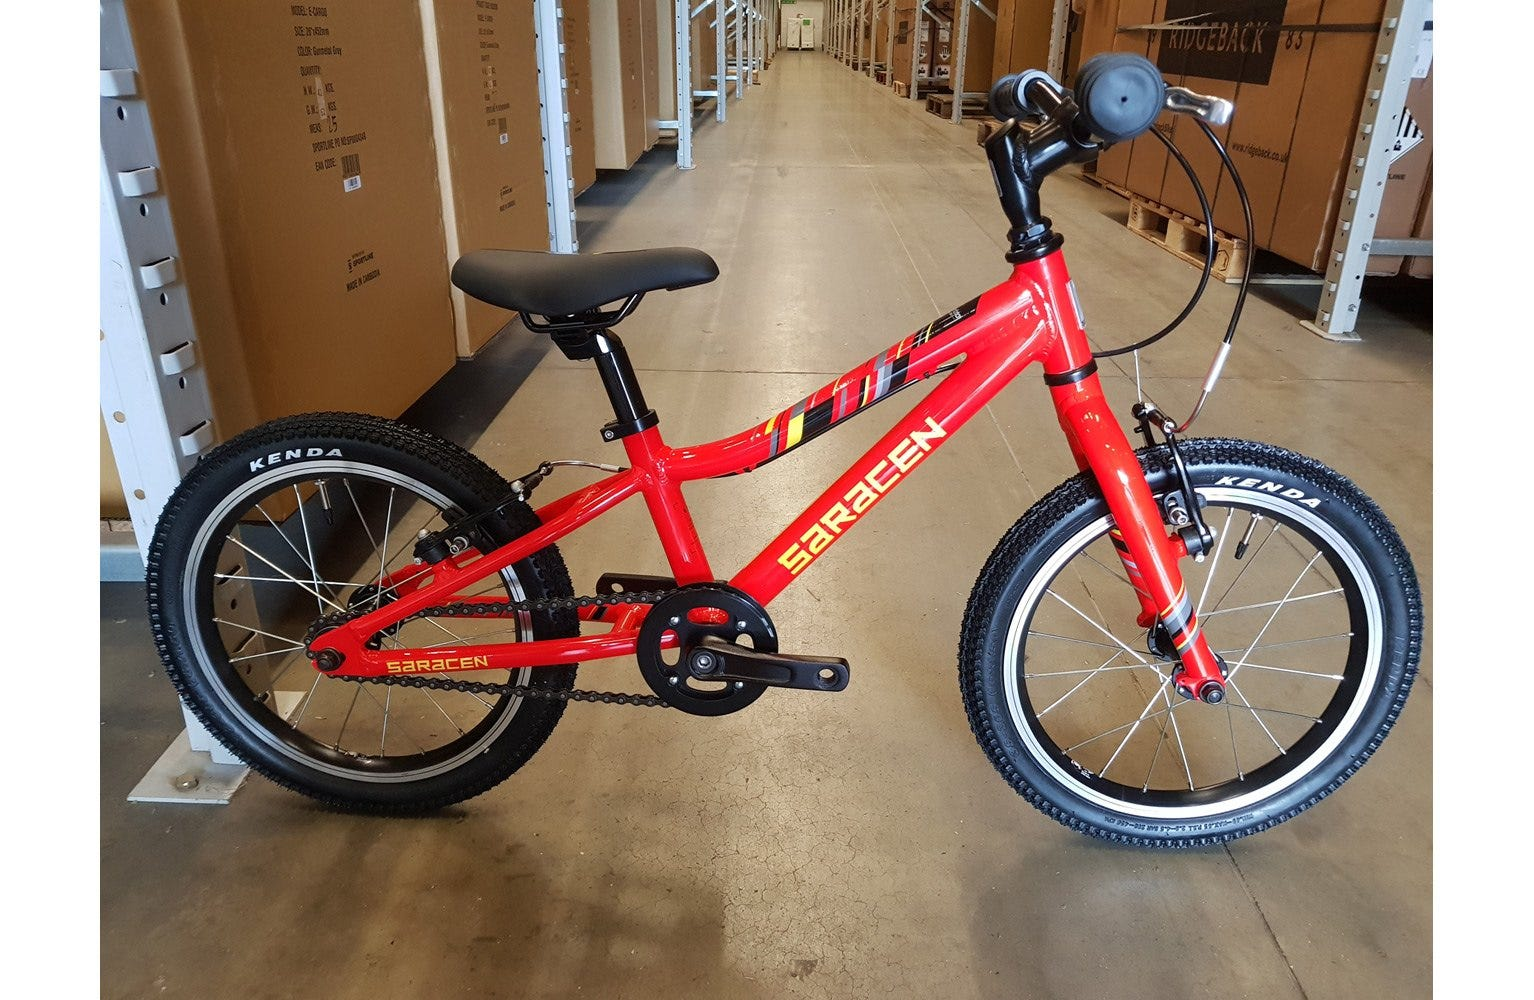 Saracen 2020  Mantra 1.6B Bike sample (used)